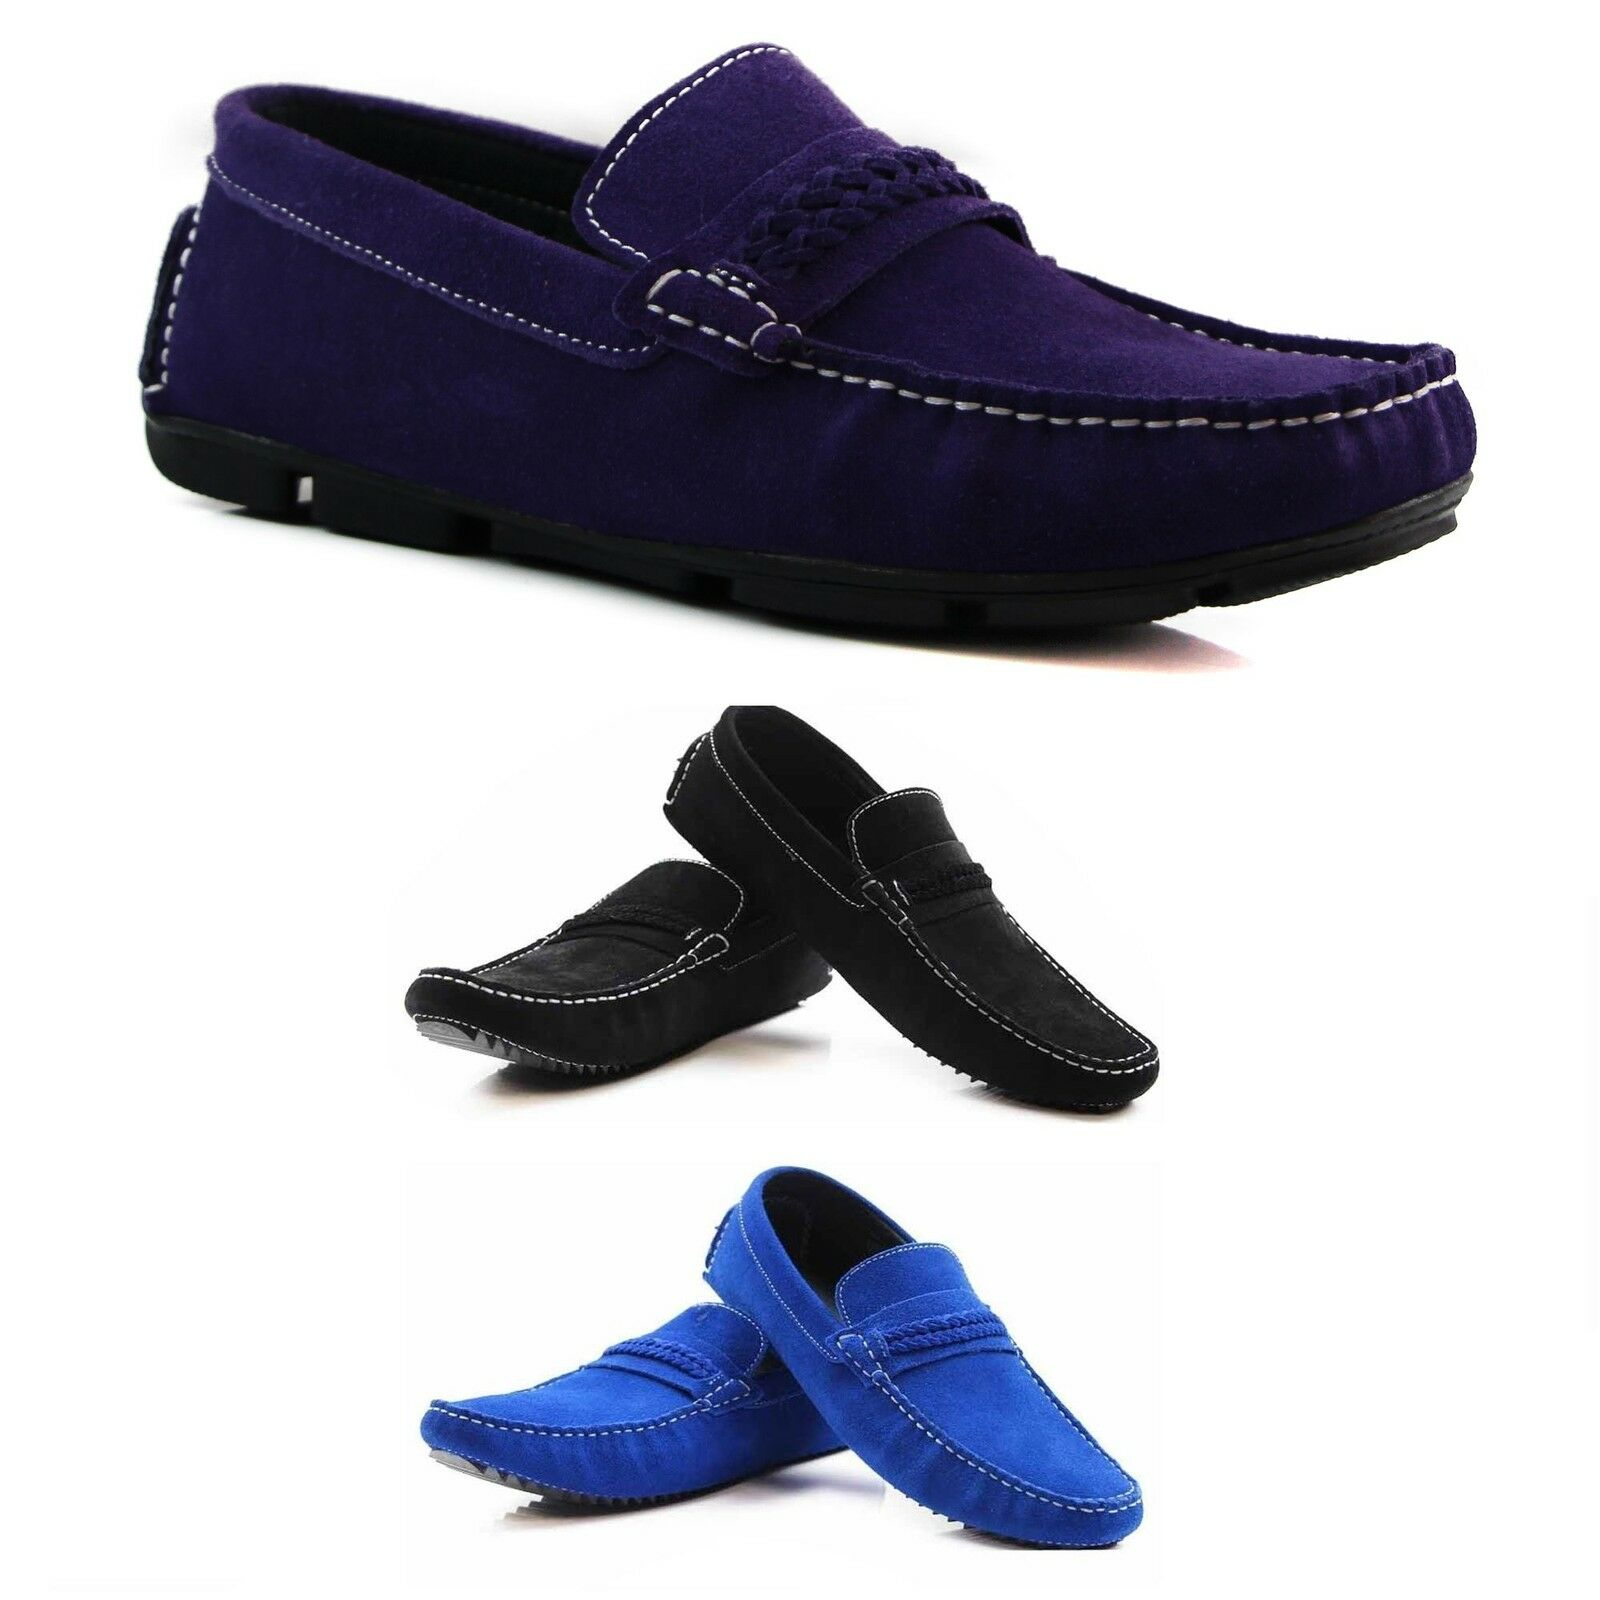 MENS Blau schwarz lila SUEDE LEATHER CASUAL BOAT DECK LOAFERS CASUAL schuhe